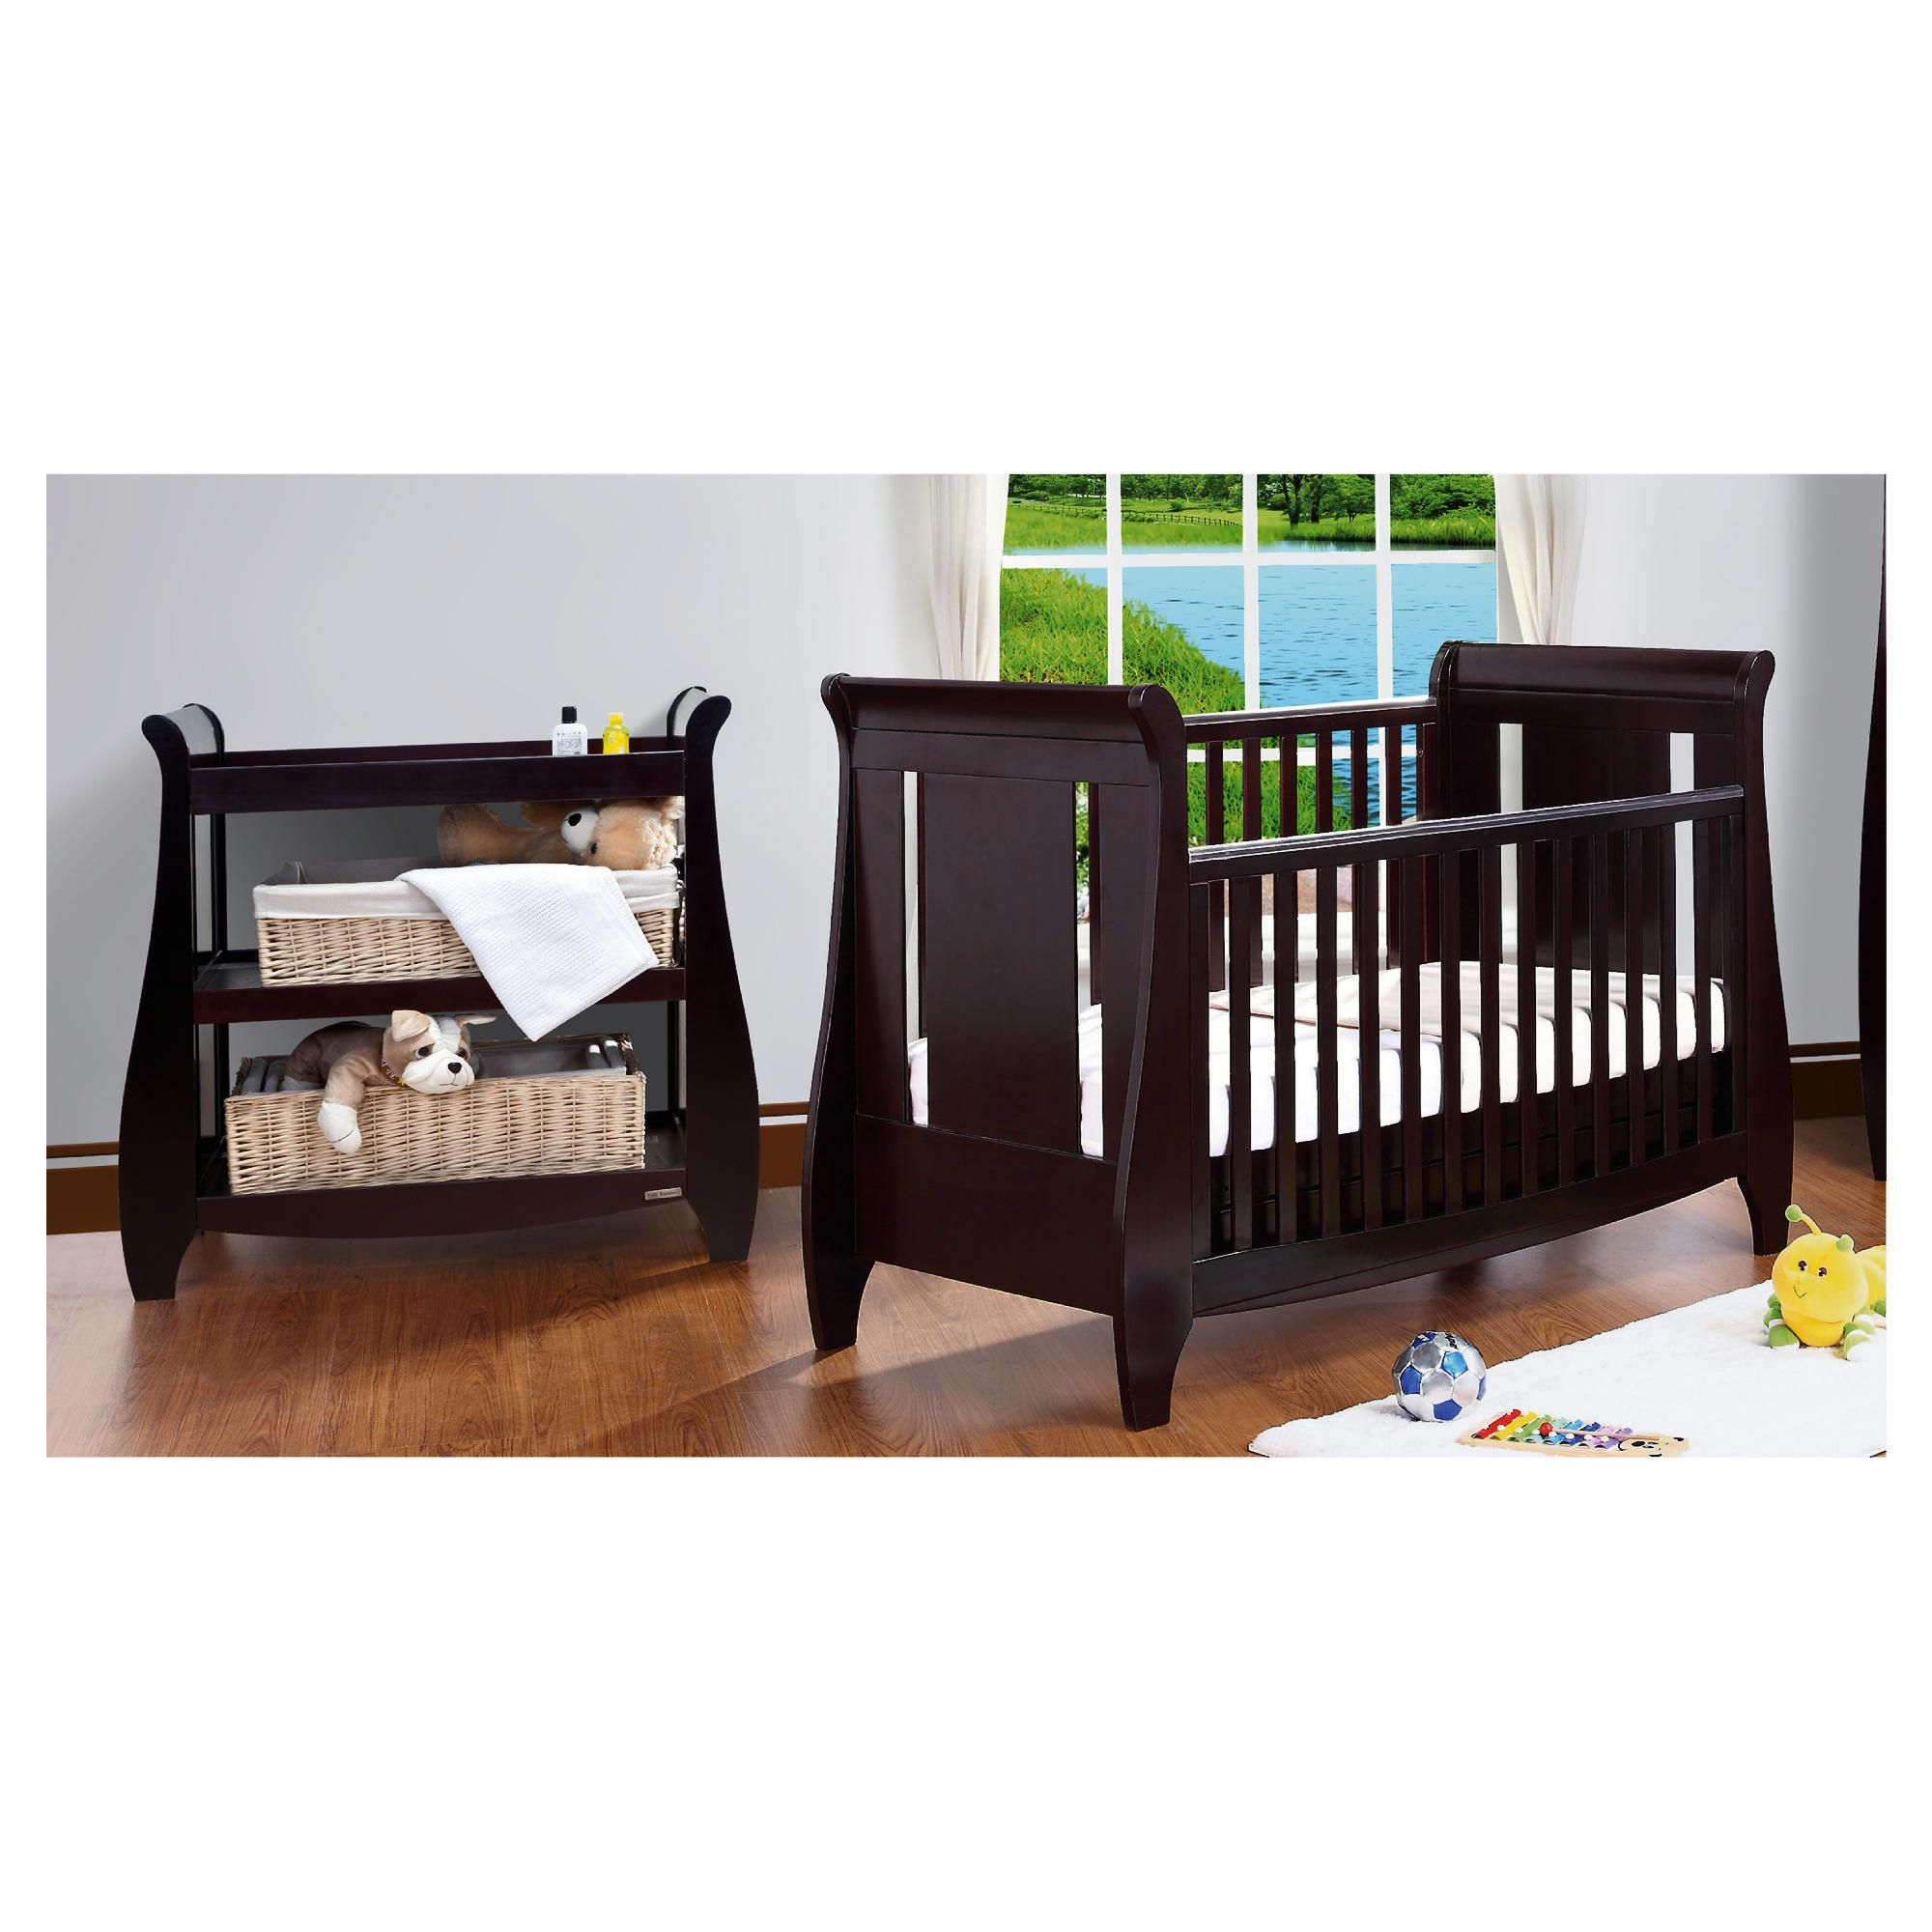 Tutti Bambini Katie Cotbed with Shelf Changer Nursery Room Set, Espresso at Tesco Direct